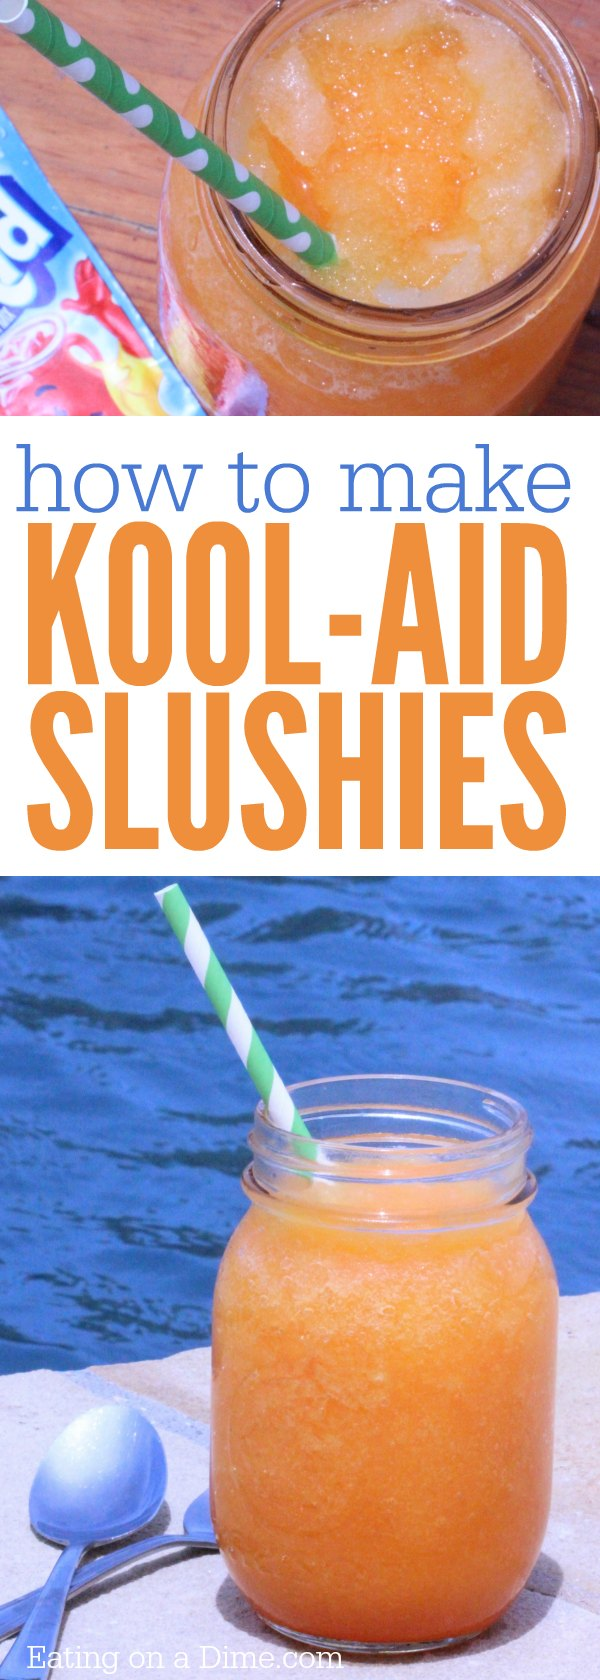 How to make a Slushie with Kool Aid mix. These kool-aid slushies are